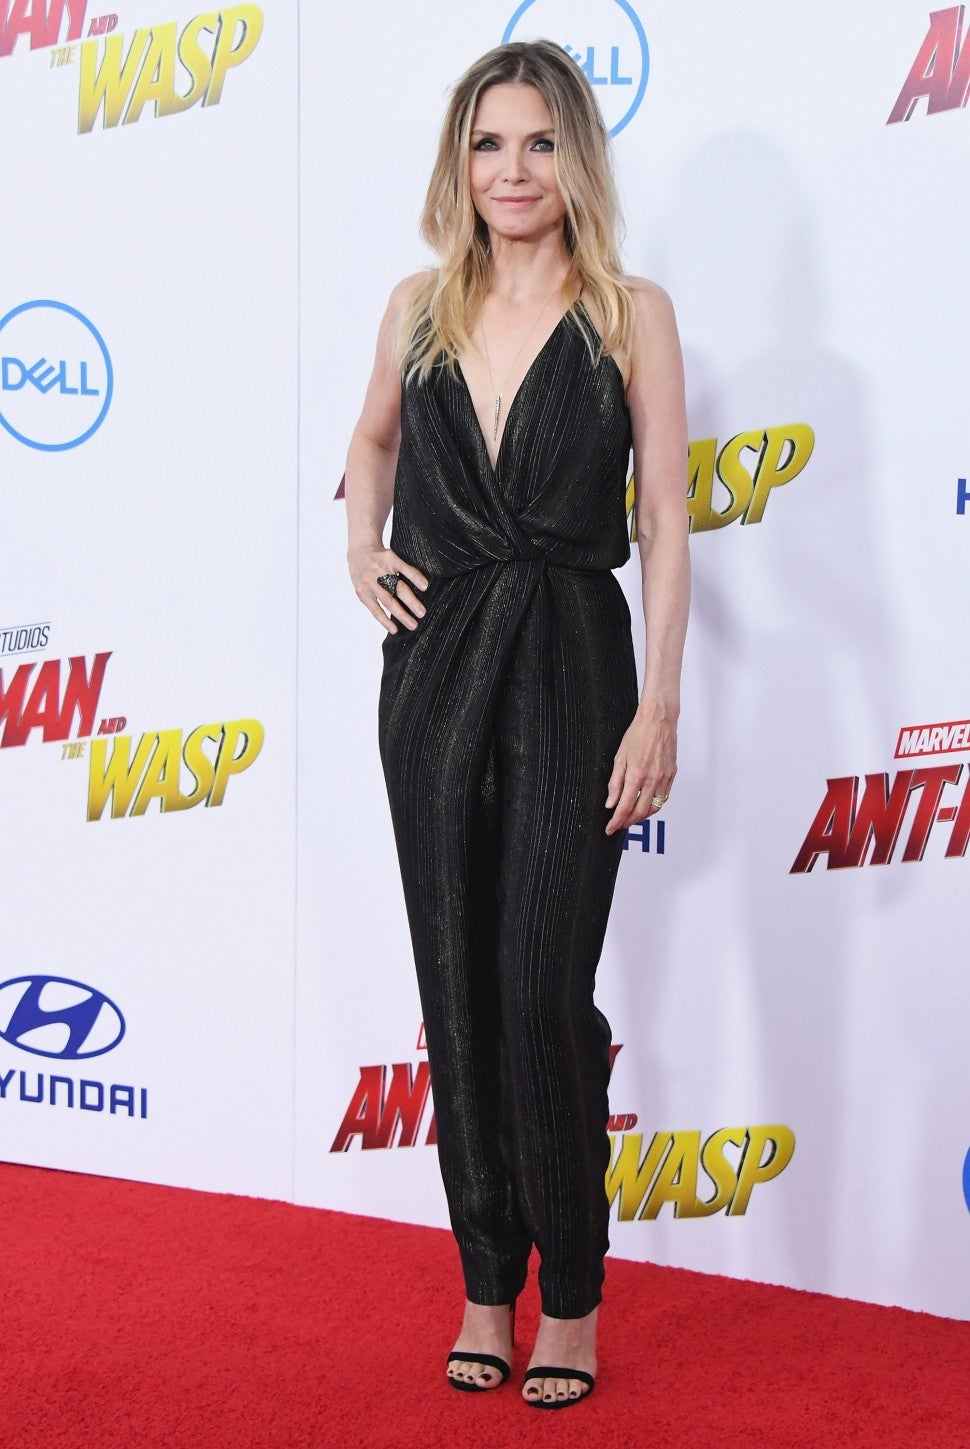 Michelle Pfeiffer at Ant-Man and the Wasp premiere